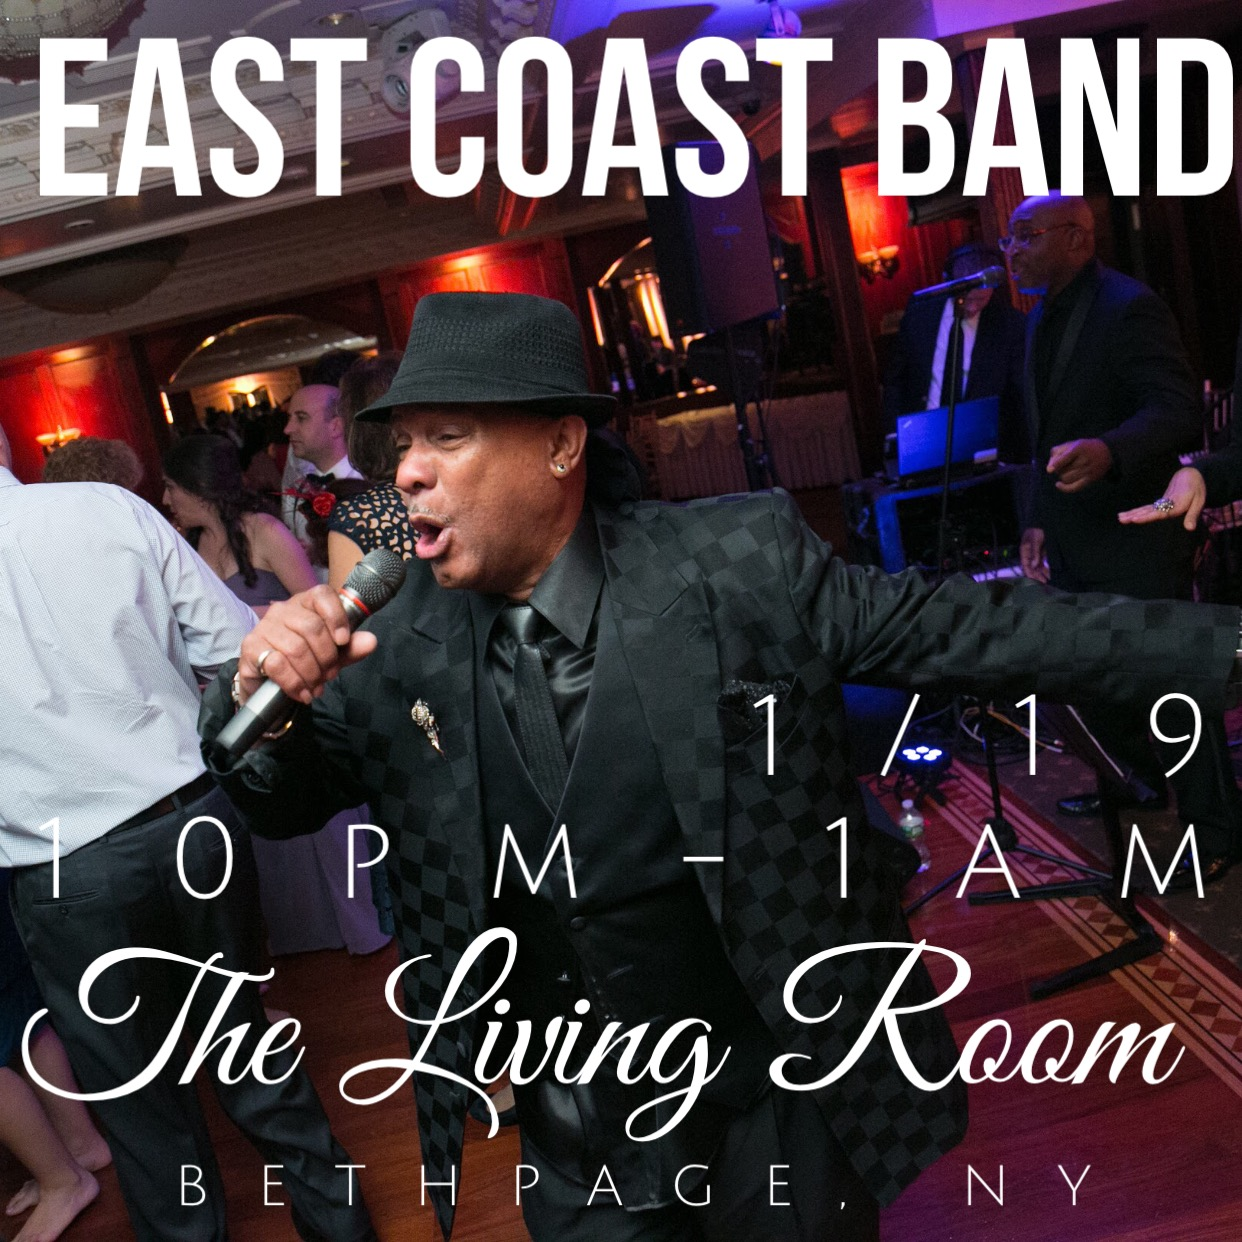 Live Band Schedule East Coast Band